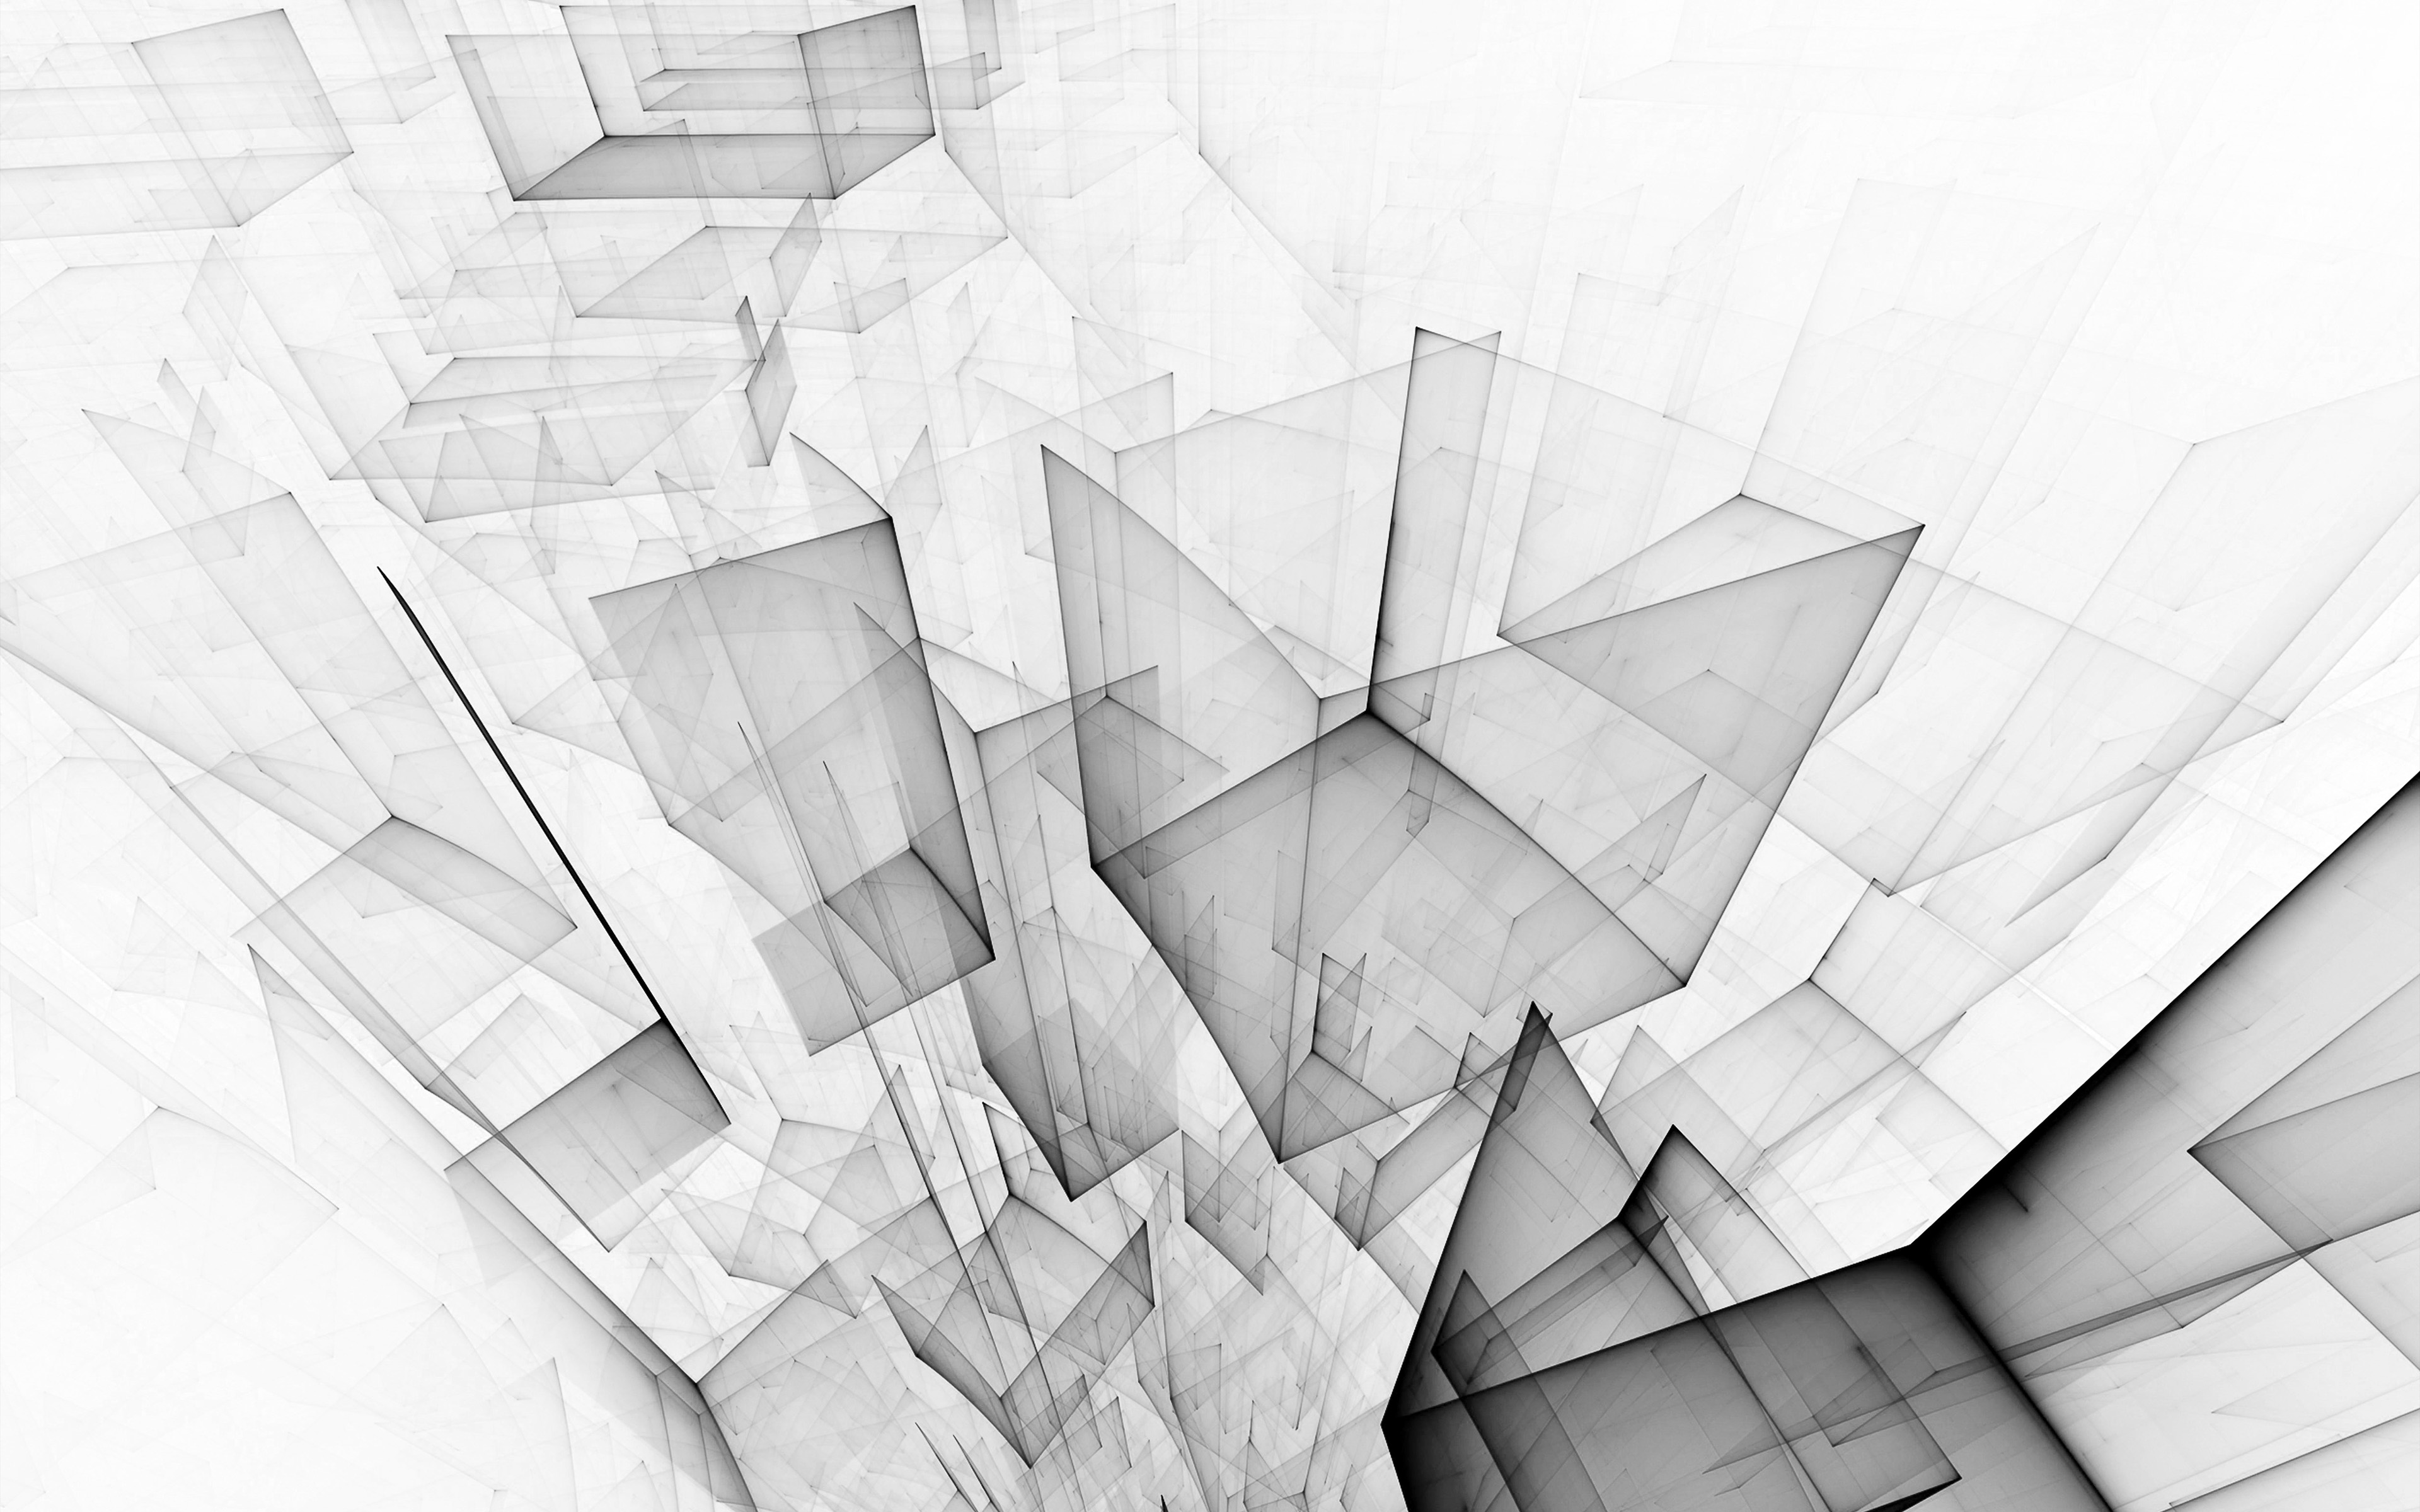 vl91-abstract-bw-white-cube-pattern-wallpaper